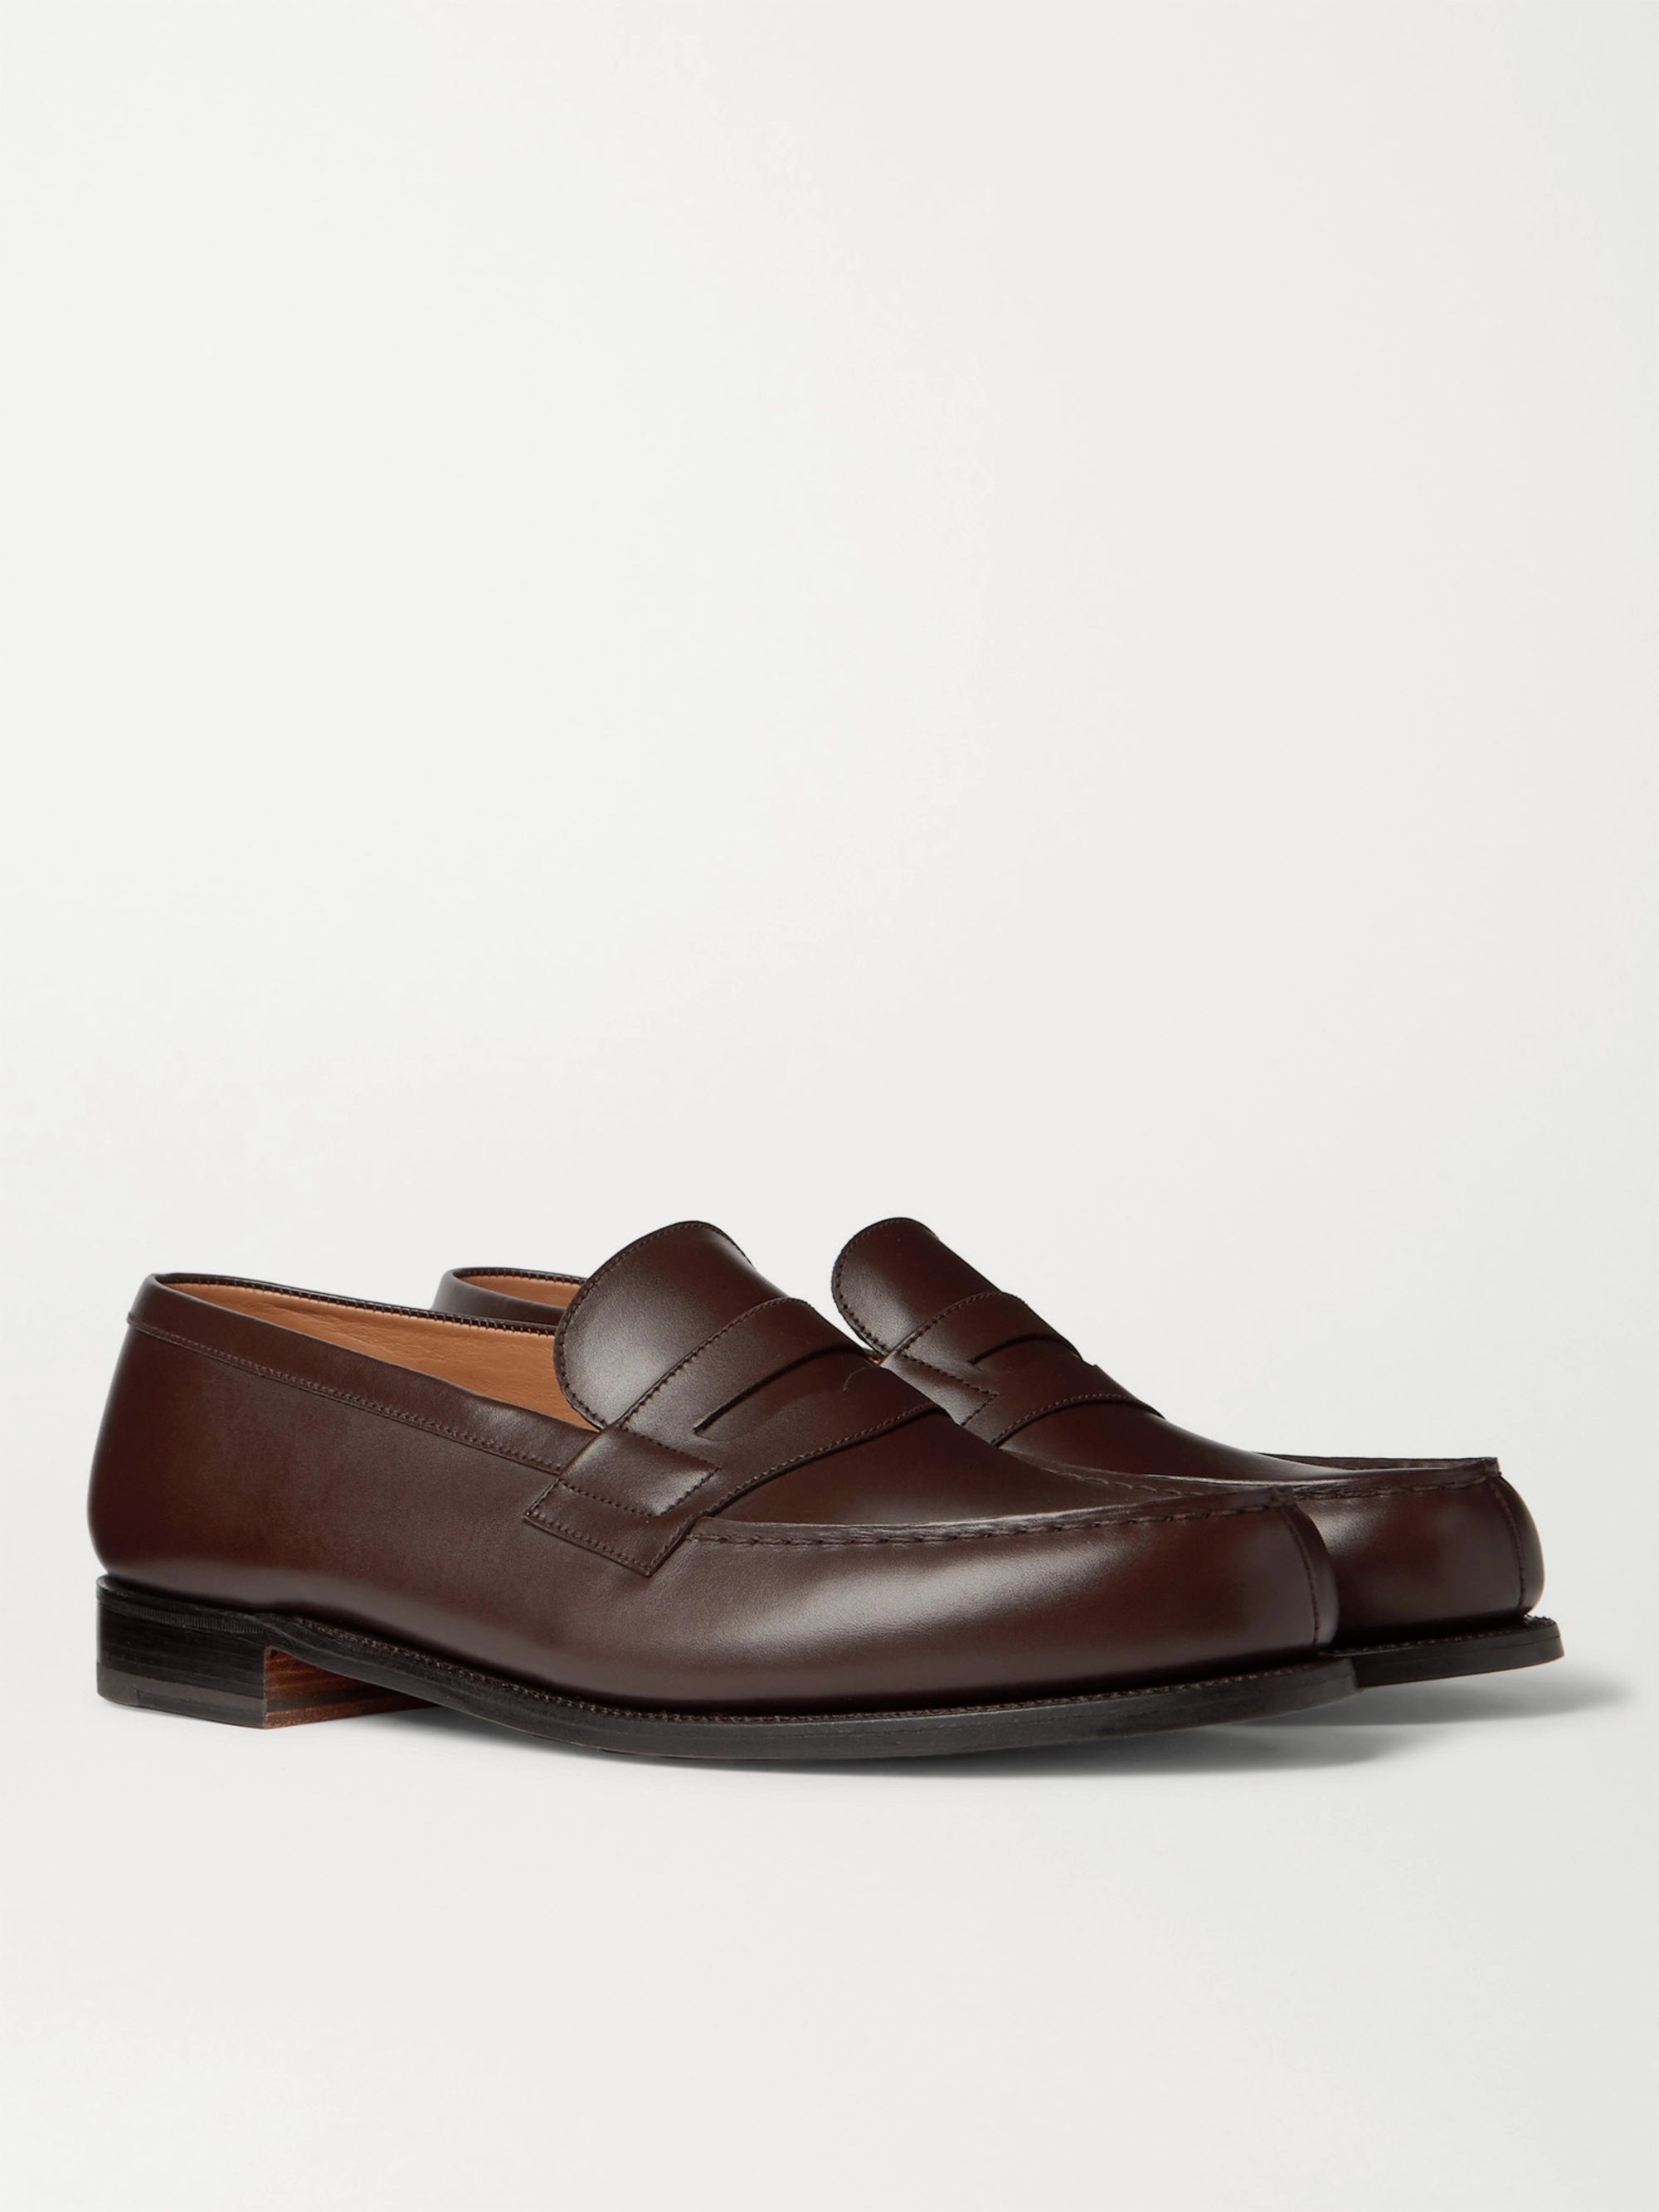 J.M. Weston 180 Moccasin Leather Loafers